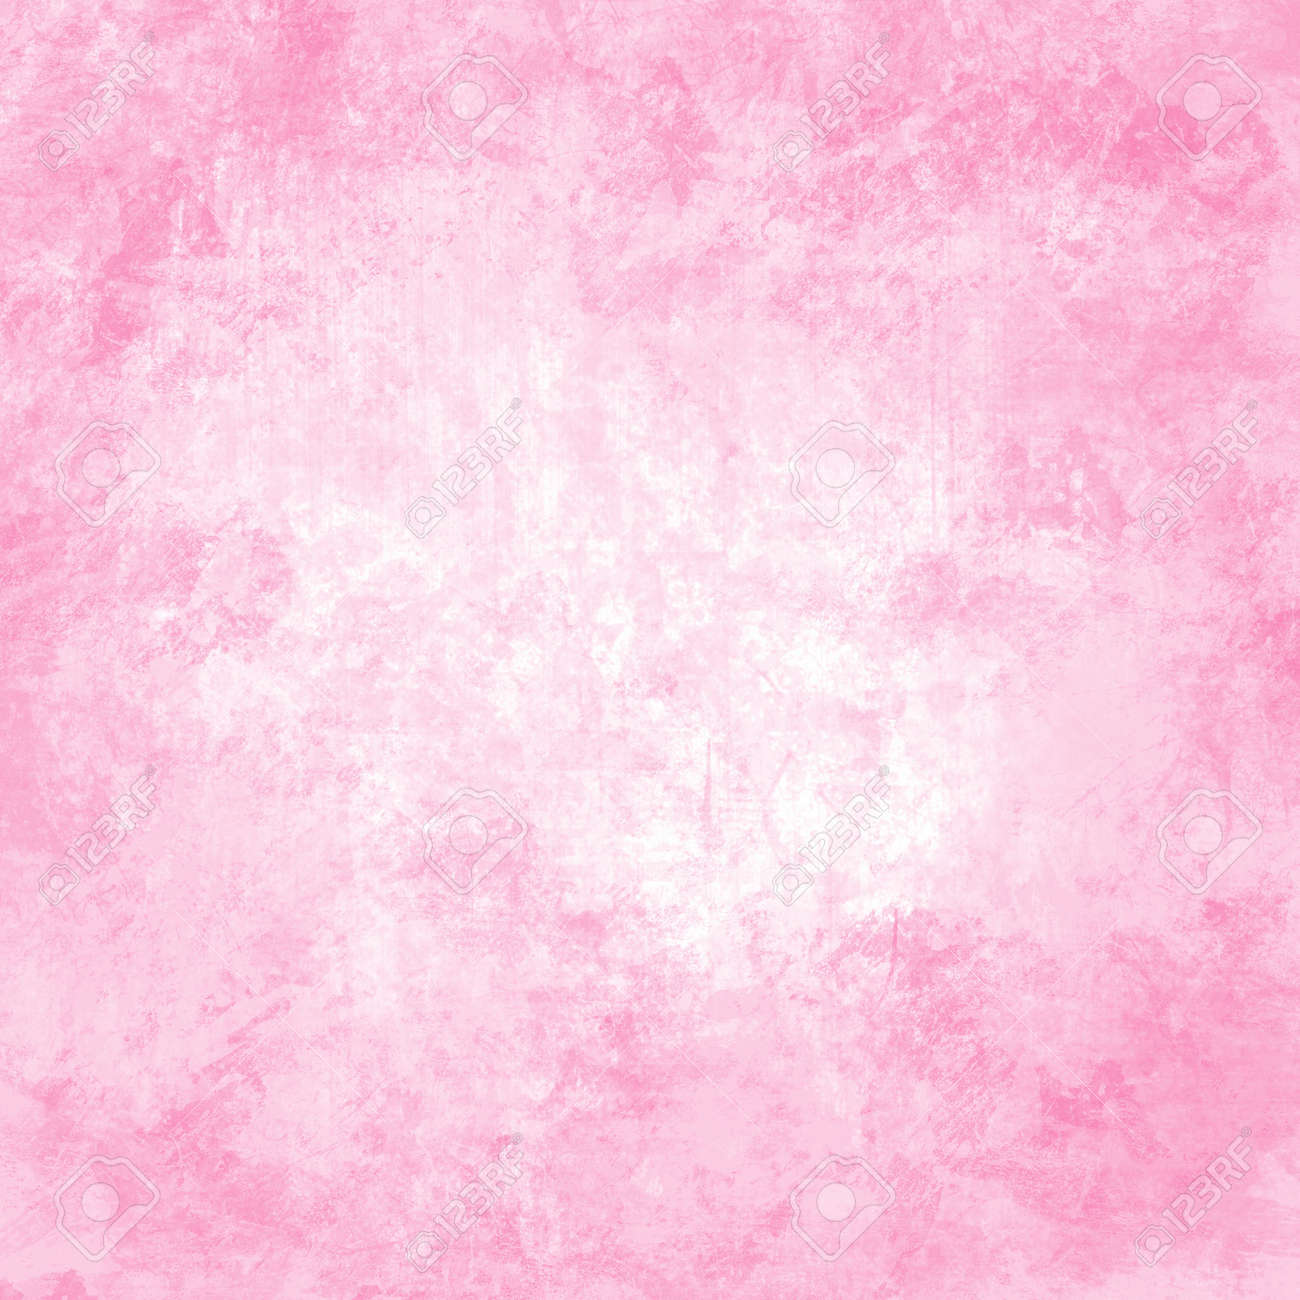 Grunge Background In Pink And White Color Abstract Pink Background